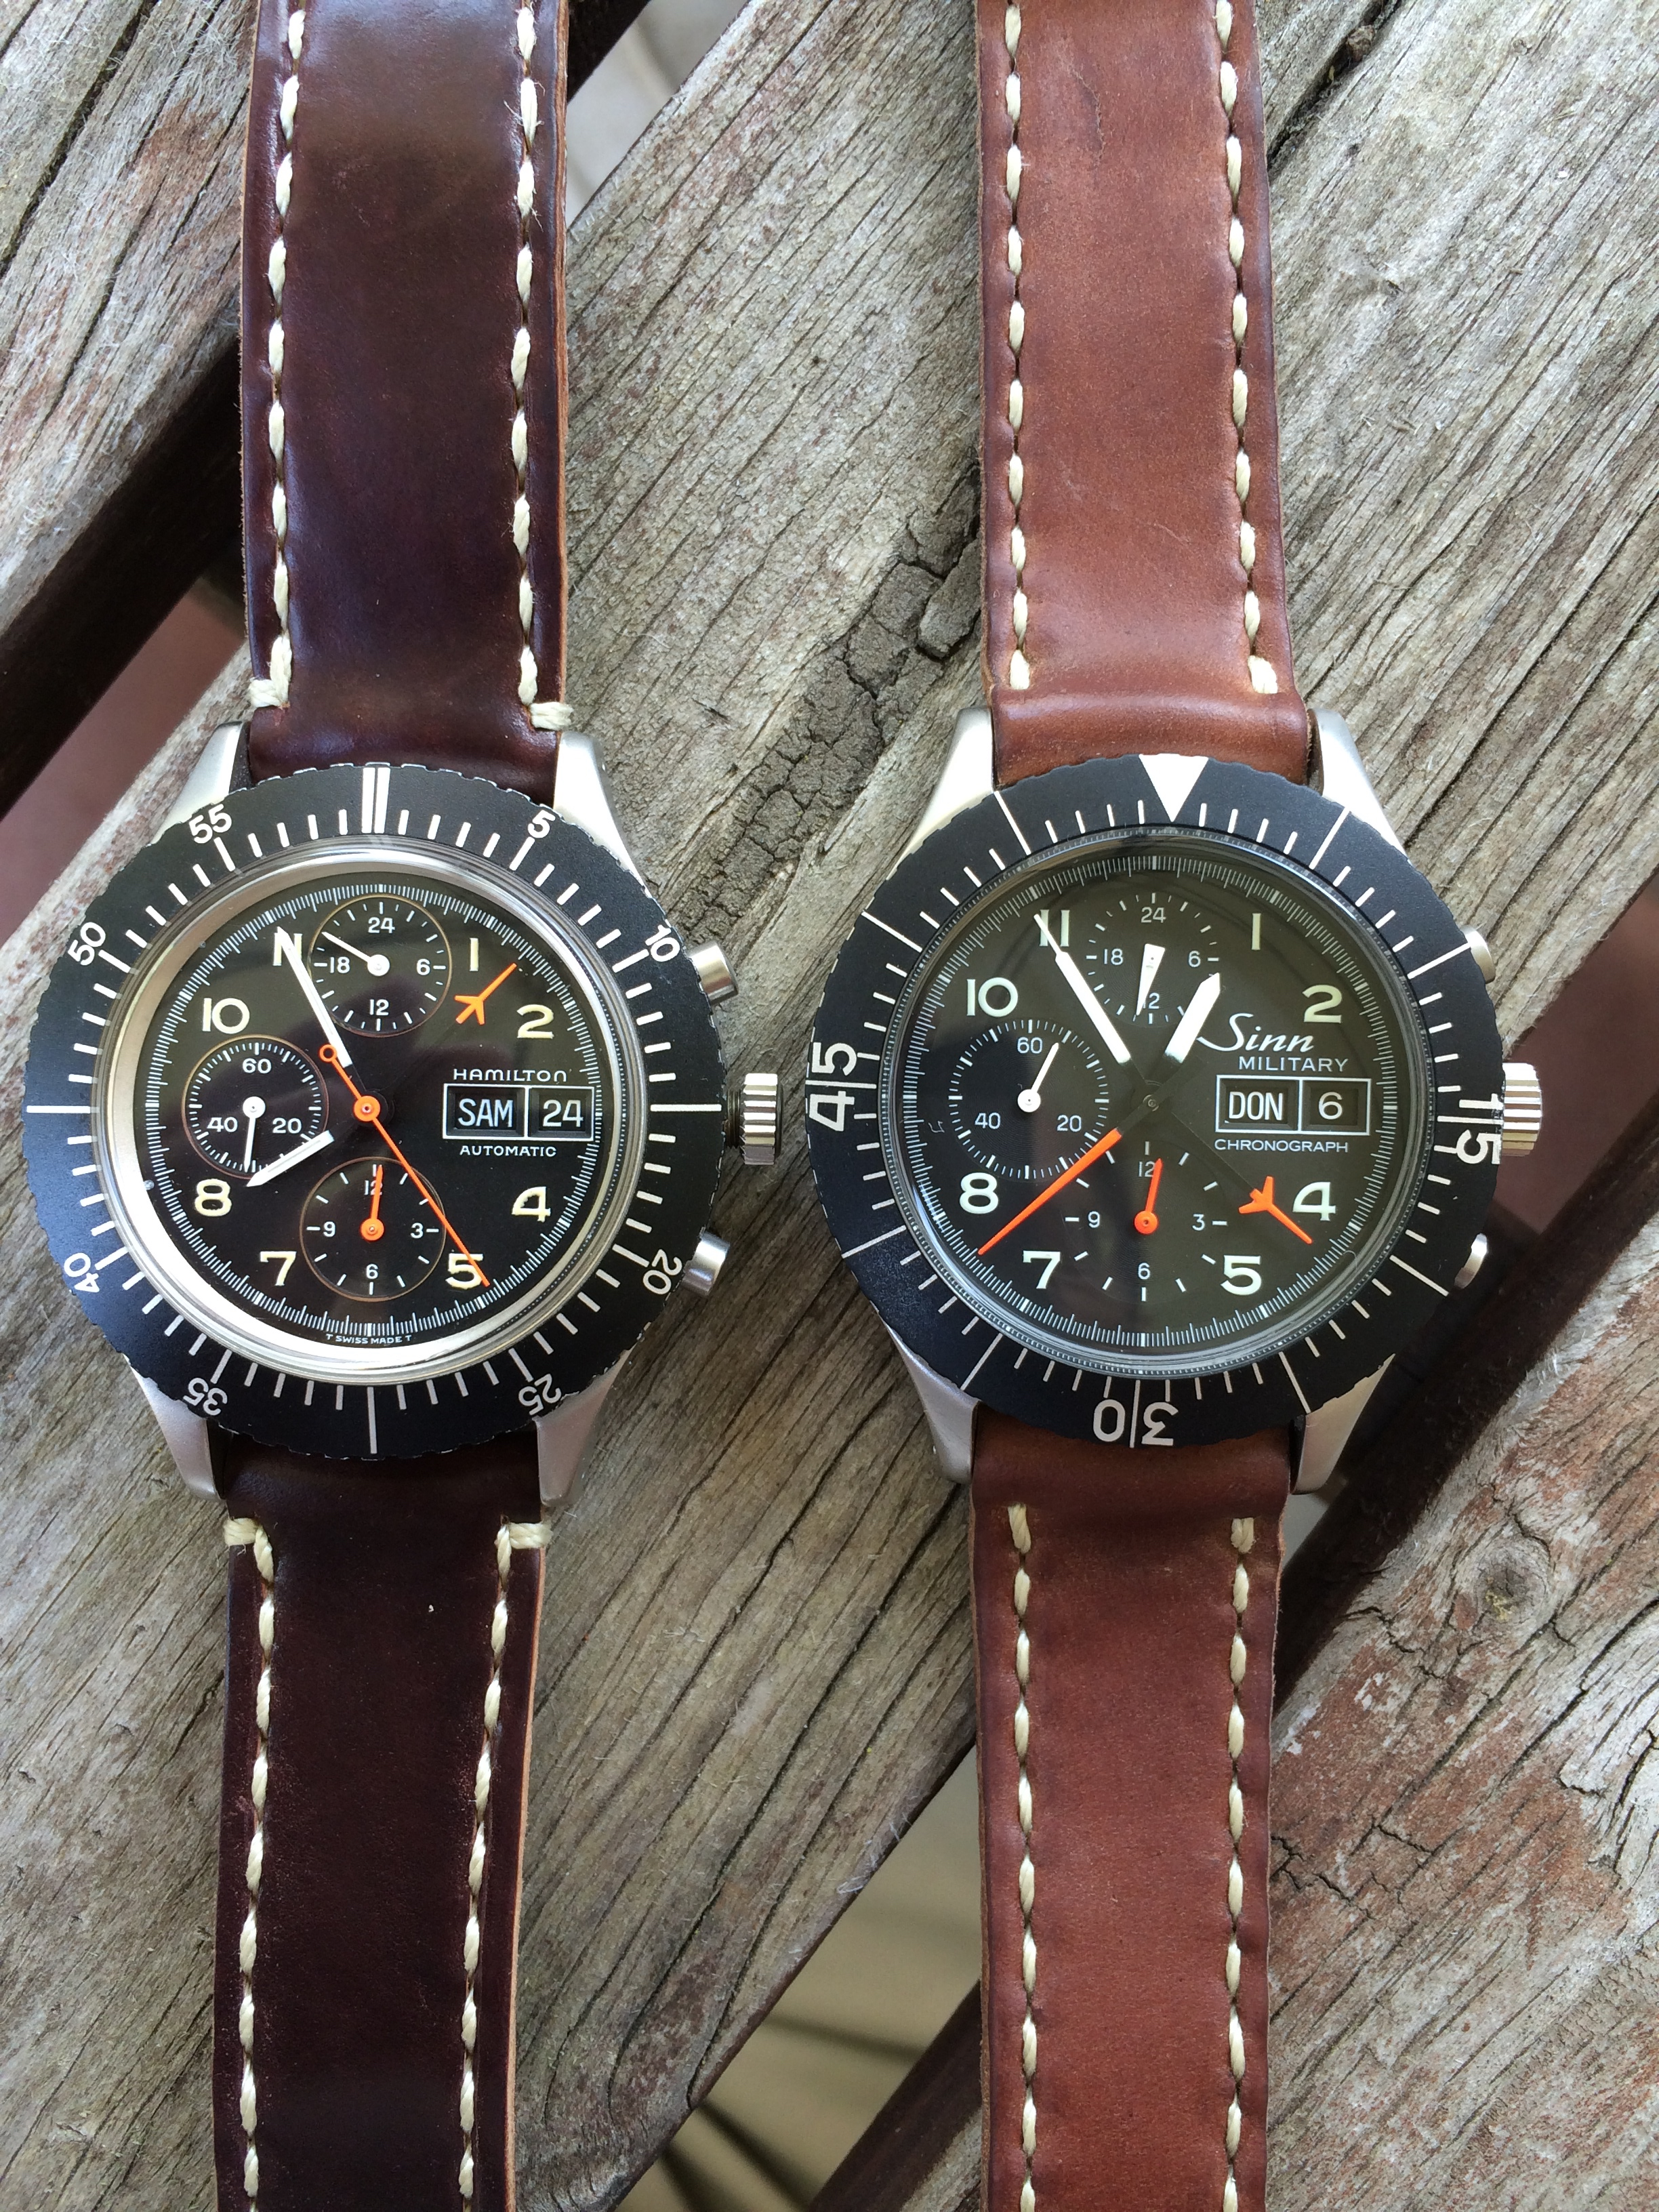 The Hamilton 156/Bund-alike and the Sinn 156.  Twins separated at birth?